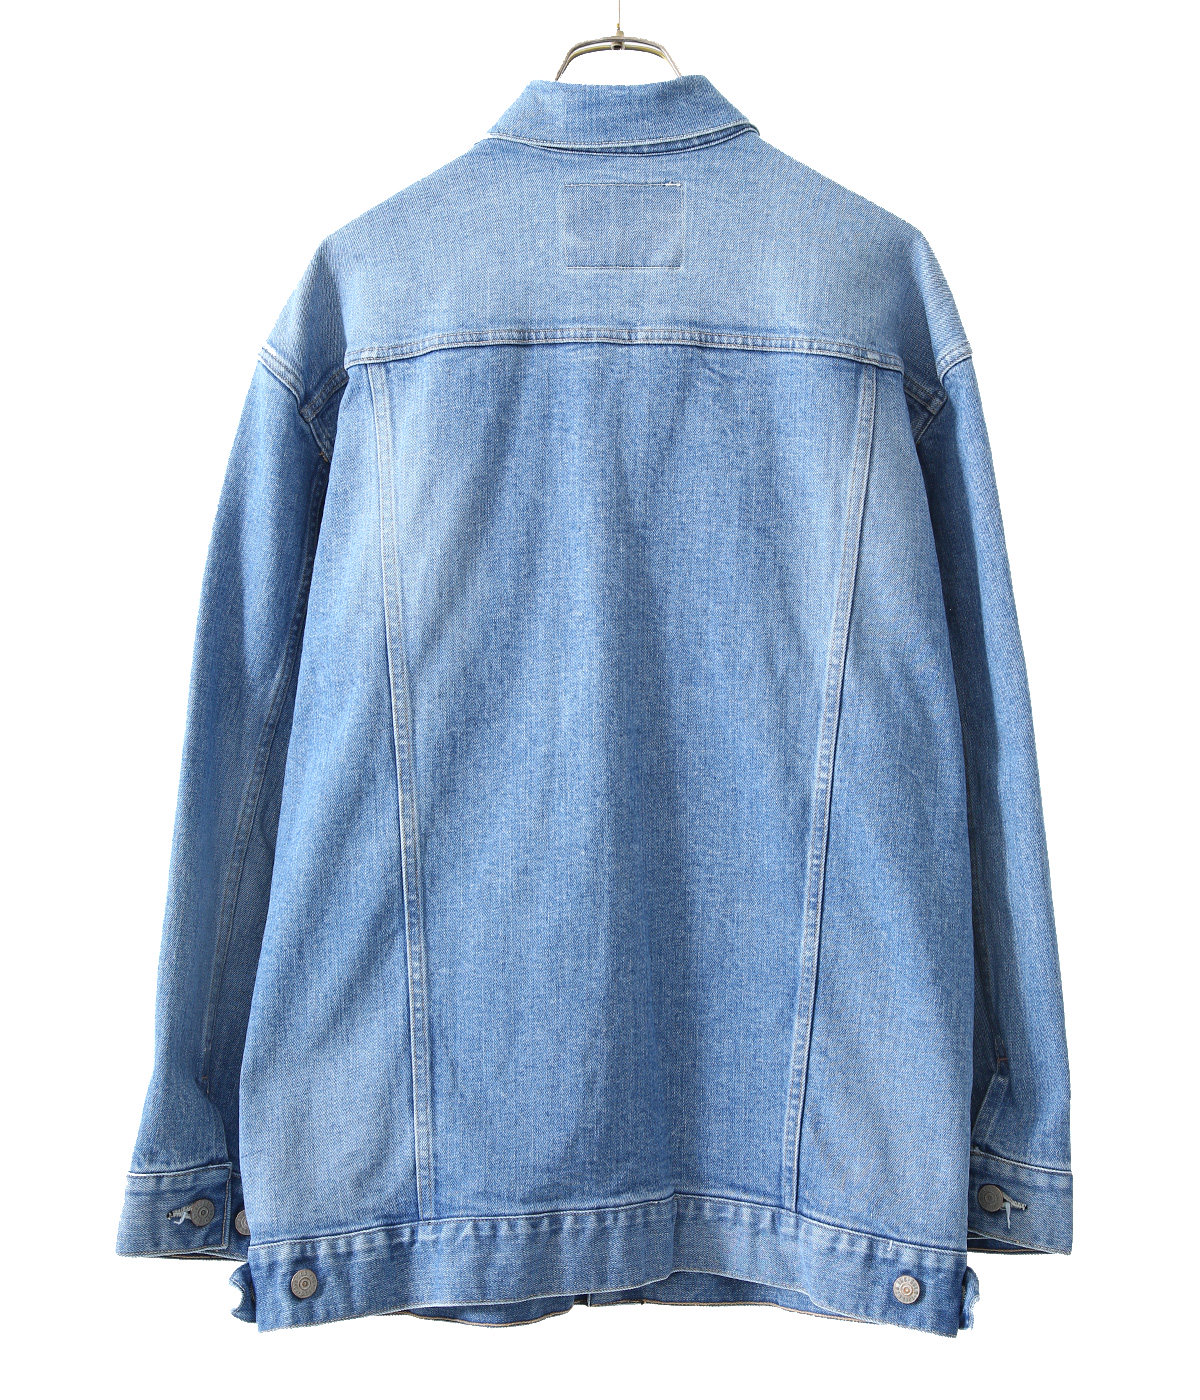 【予約】12oz. STRETCH DENIM LONG TRUCKER JACKET AGED MODEL